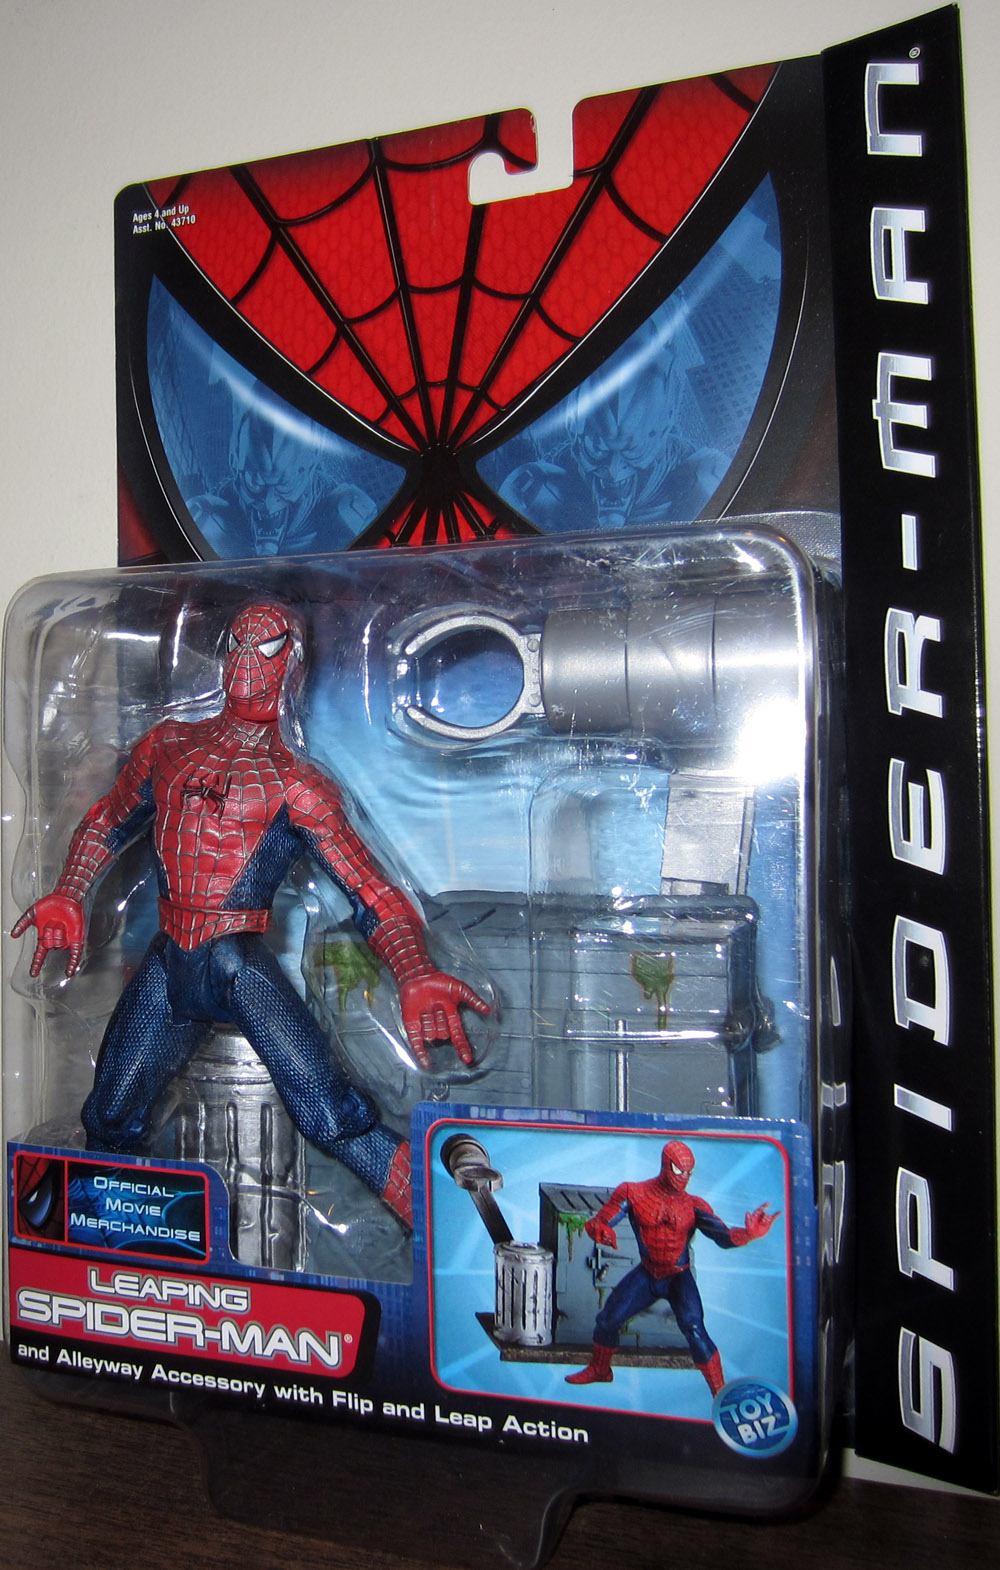 Leaping Spider-Man (movie)